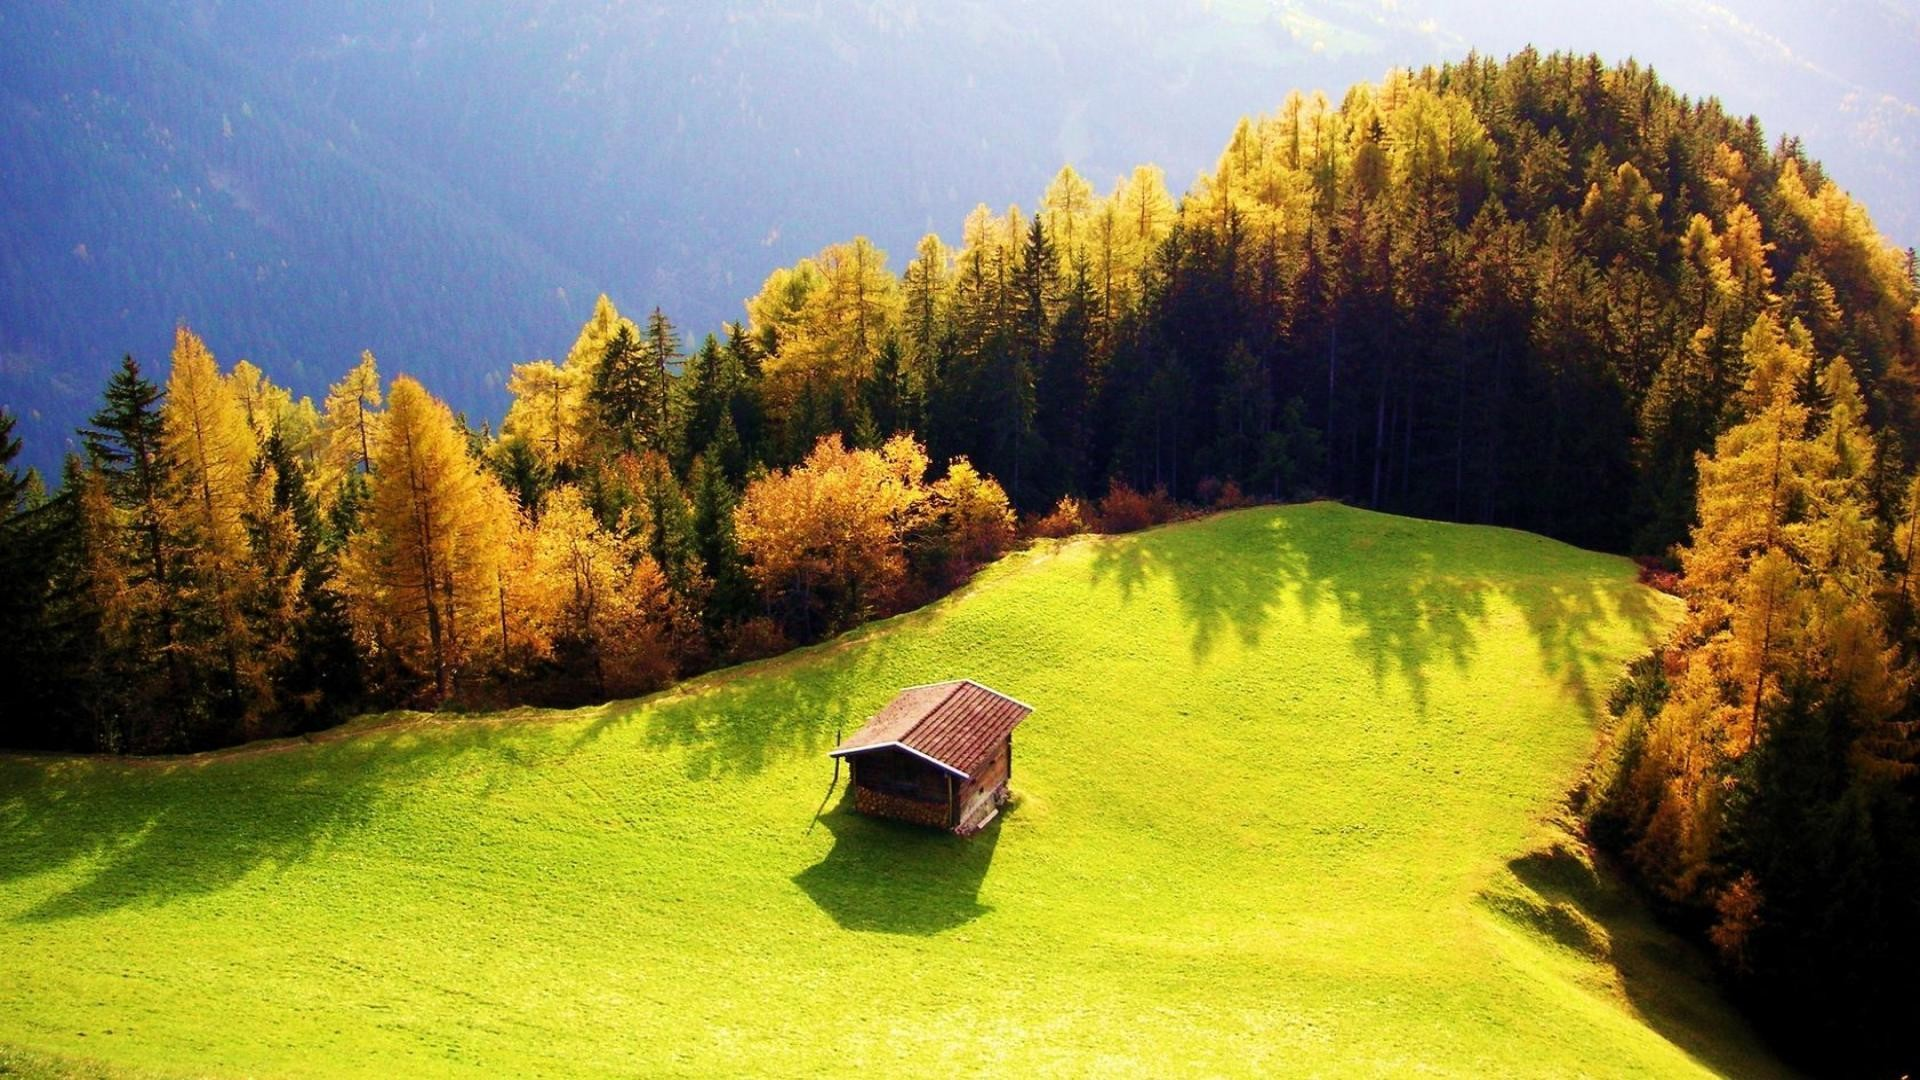 HD Awesome Nature Landscape Wallpaper Full Size – HiReWallpapers 222